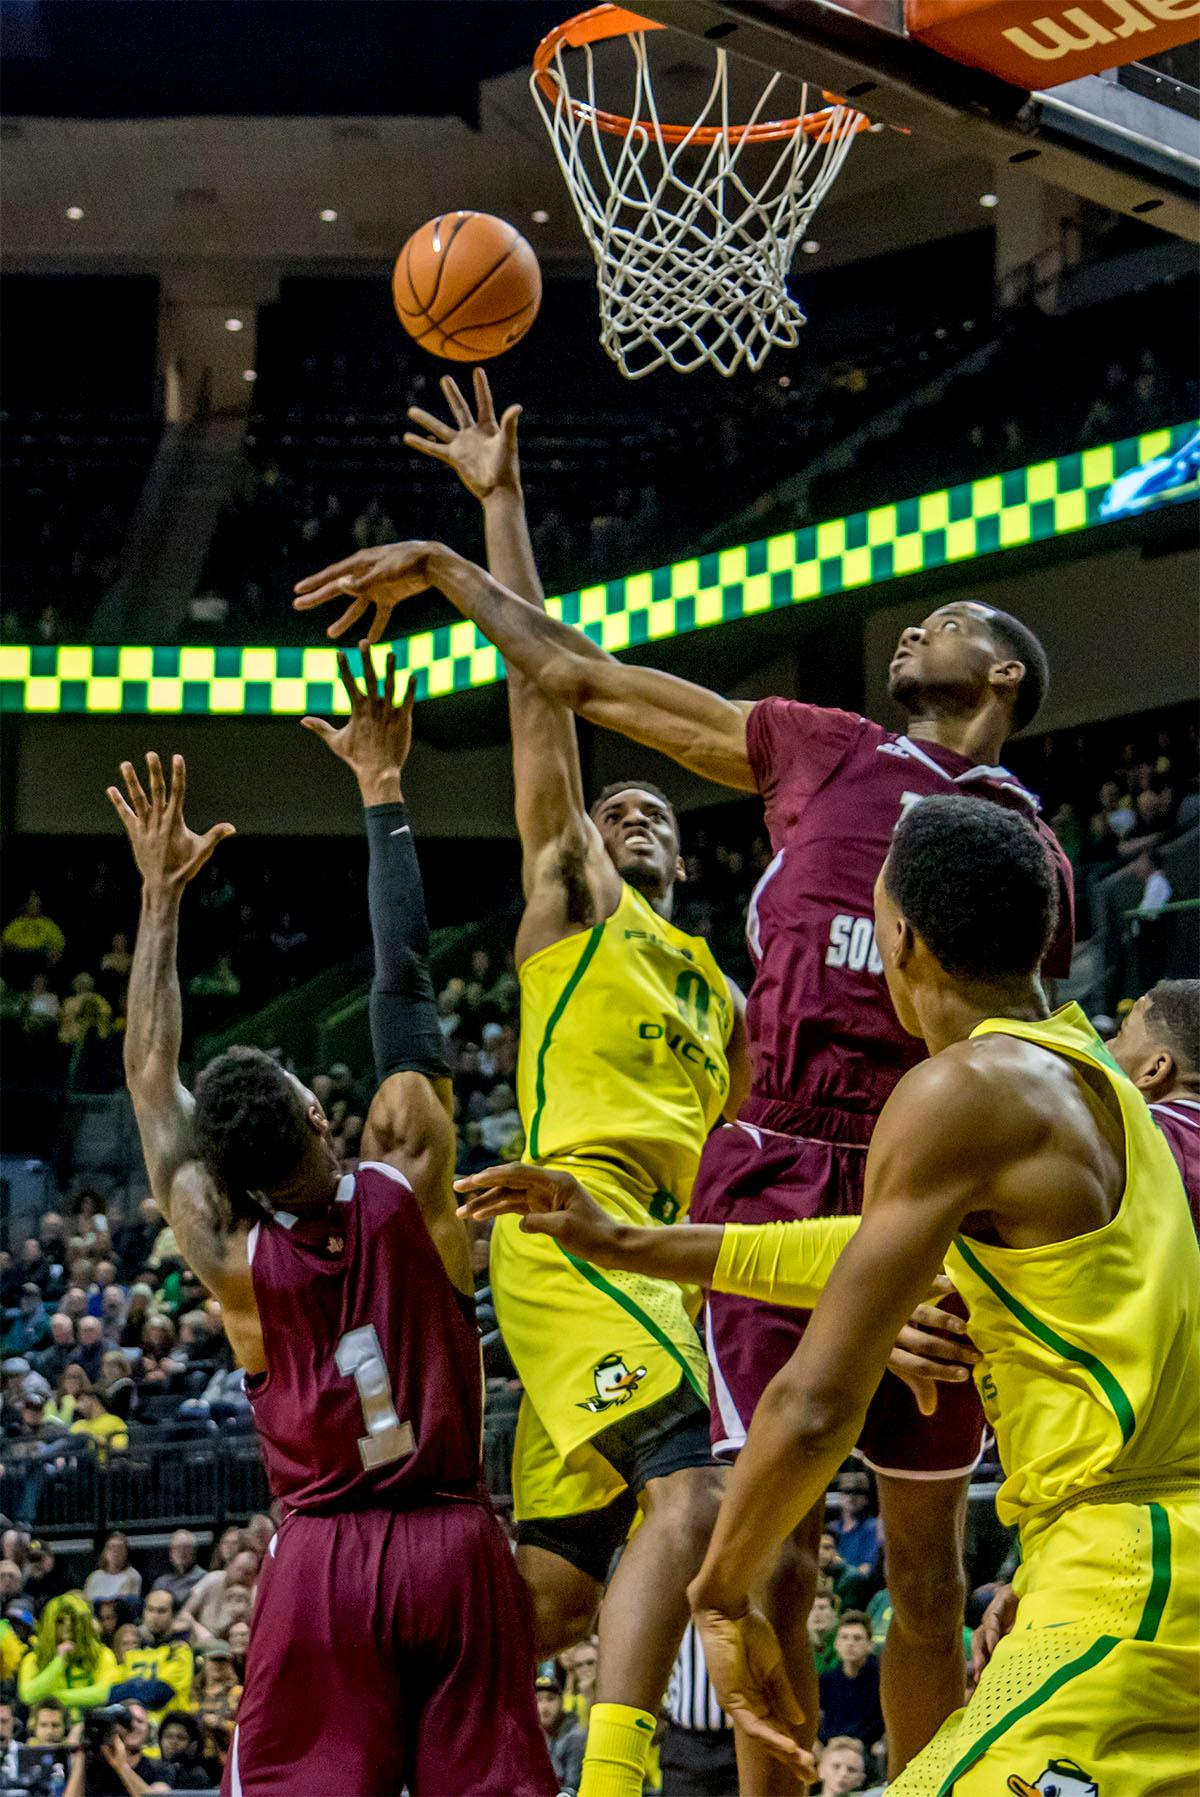 The Duck's Troy Brown (#0) makes a throw for the basket over the heads of several Tigers players. The Oregon Ducks defeated Texas Southern Tigers 74-68. The Ducks are now 7-3 overall in the Pac-12. Photo by August Frank. Oregon News Lab